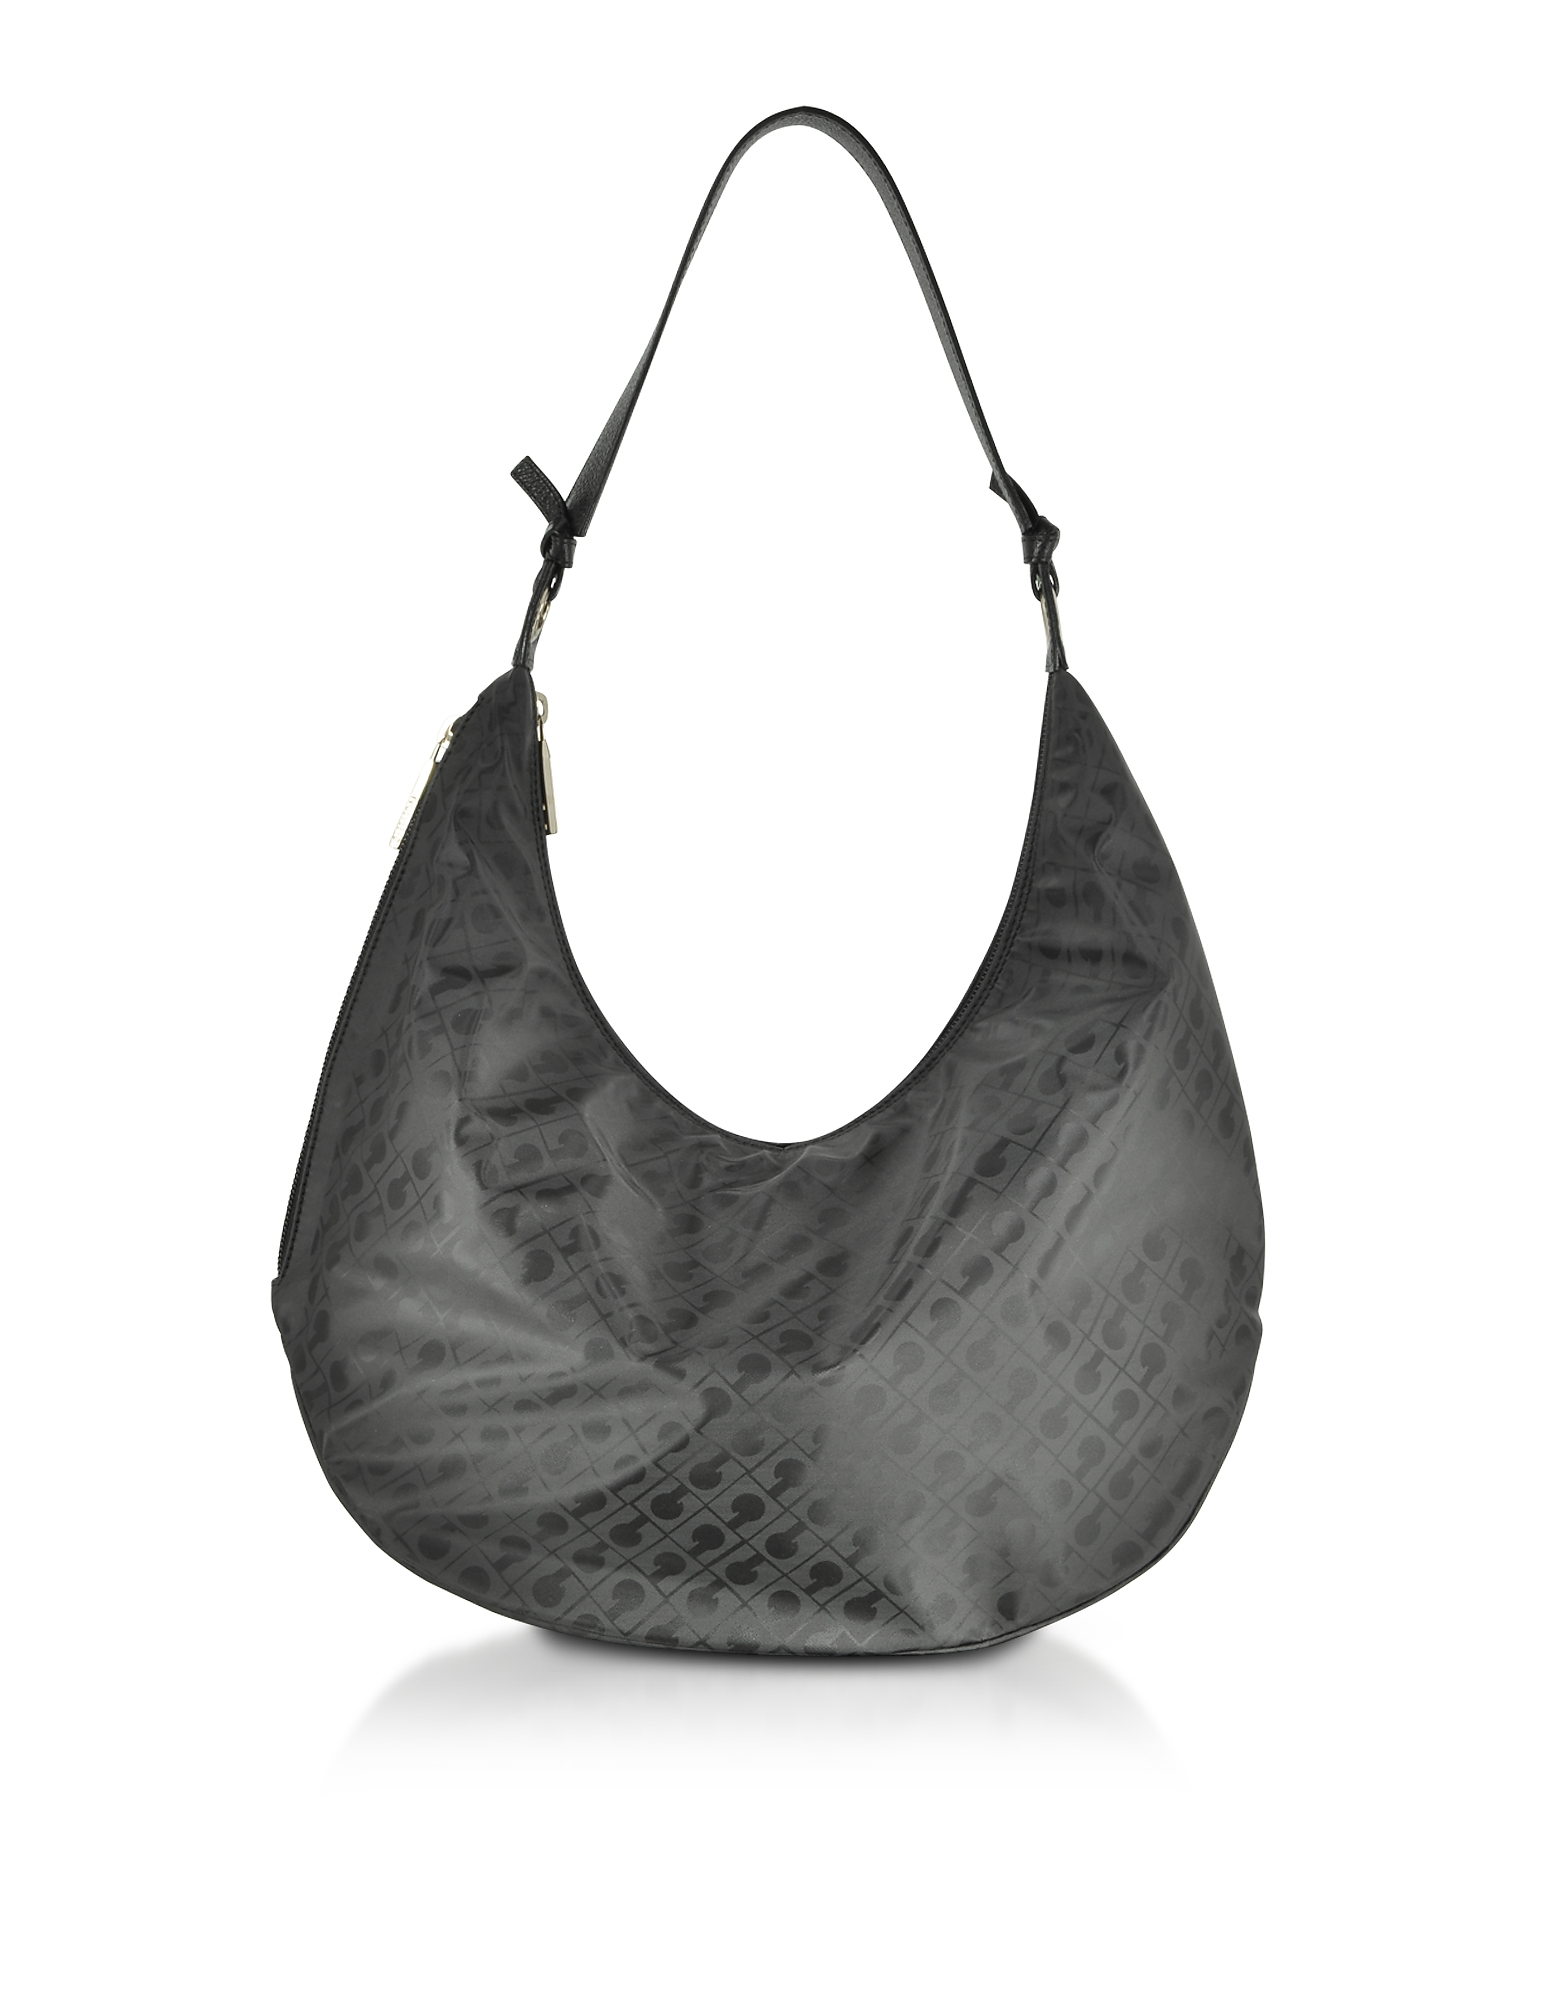 Image of Gherardini Designer Handbags, Signature Coated Canvas and Leather Softy Shoulder Bag